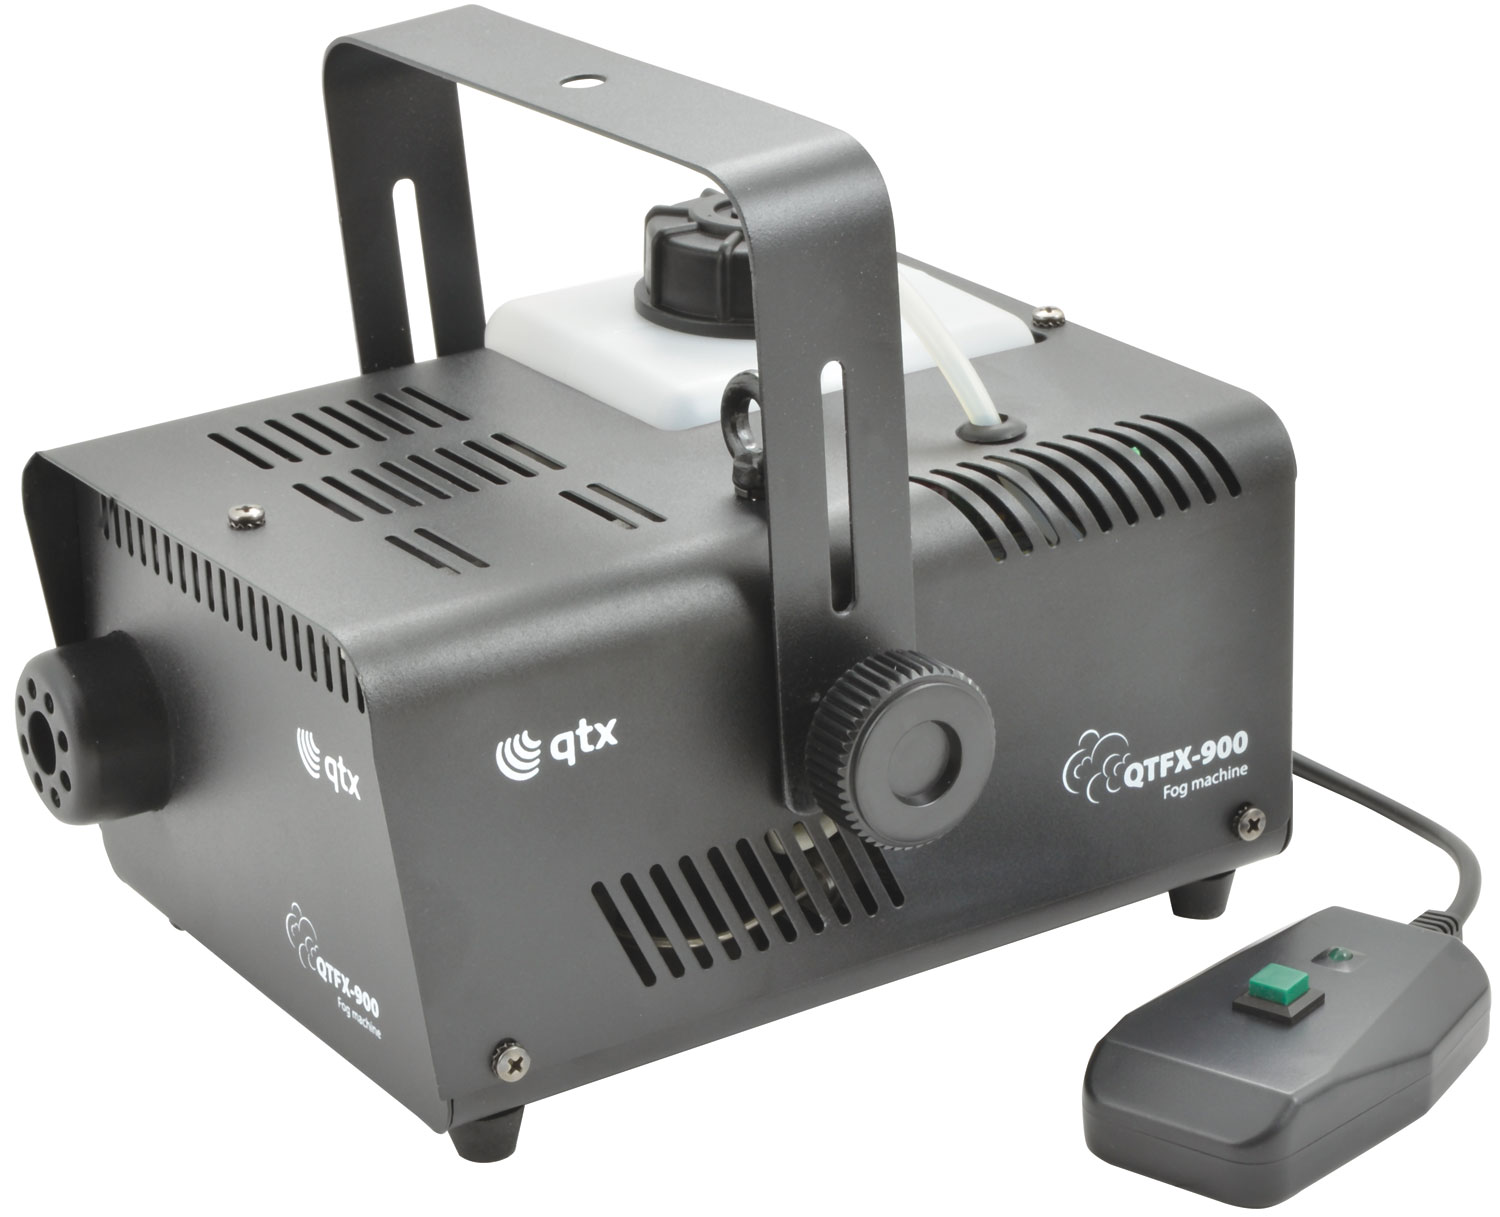 QTFX-900 SMOKE MACHINE